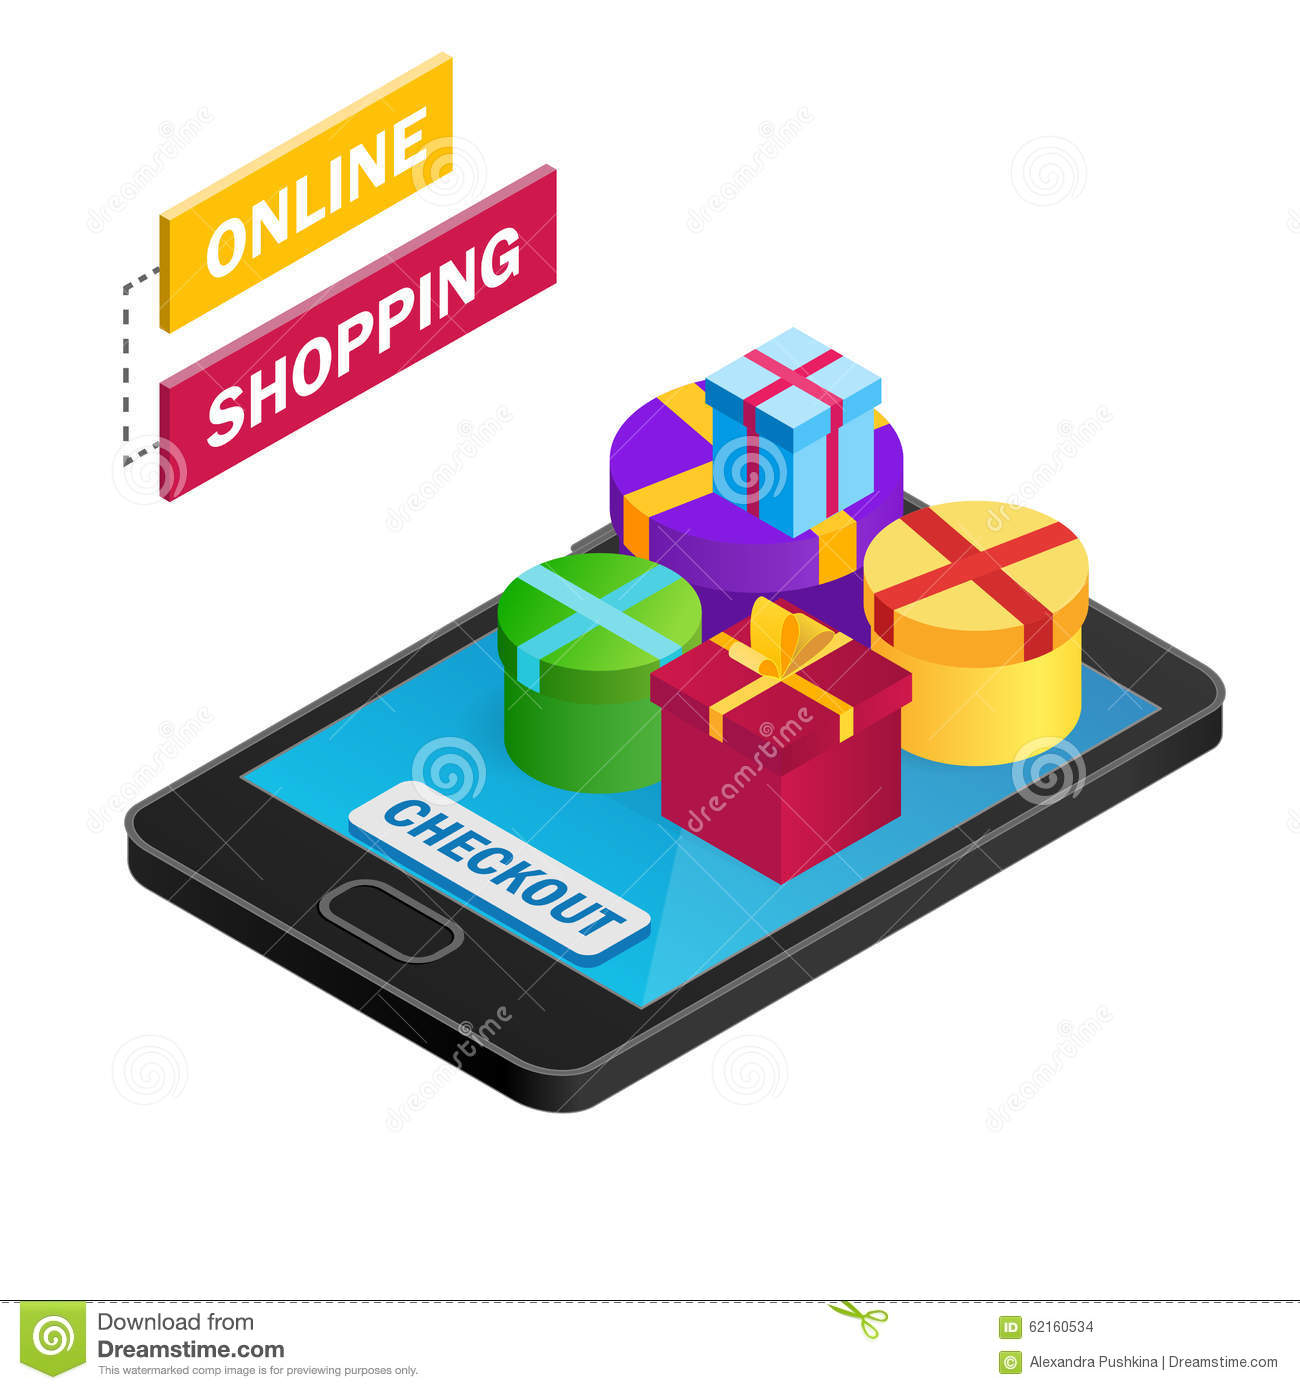 isometric-smartphone-gift-boxes-online-shopping-concept-colorful-sale-discount-theme-vector-illustration-62160534.jpg